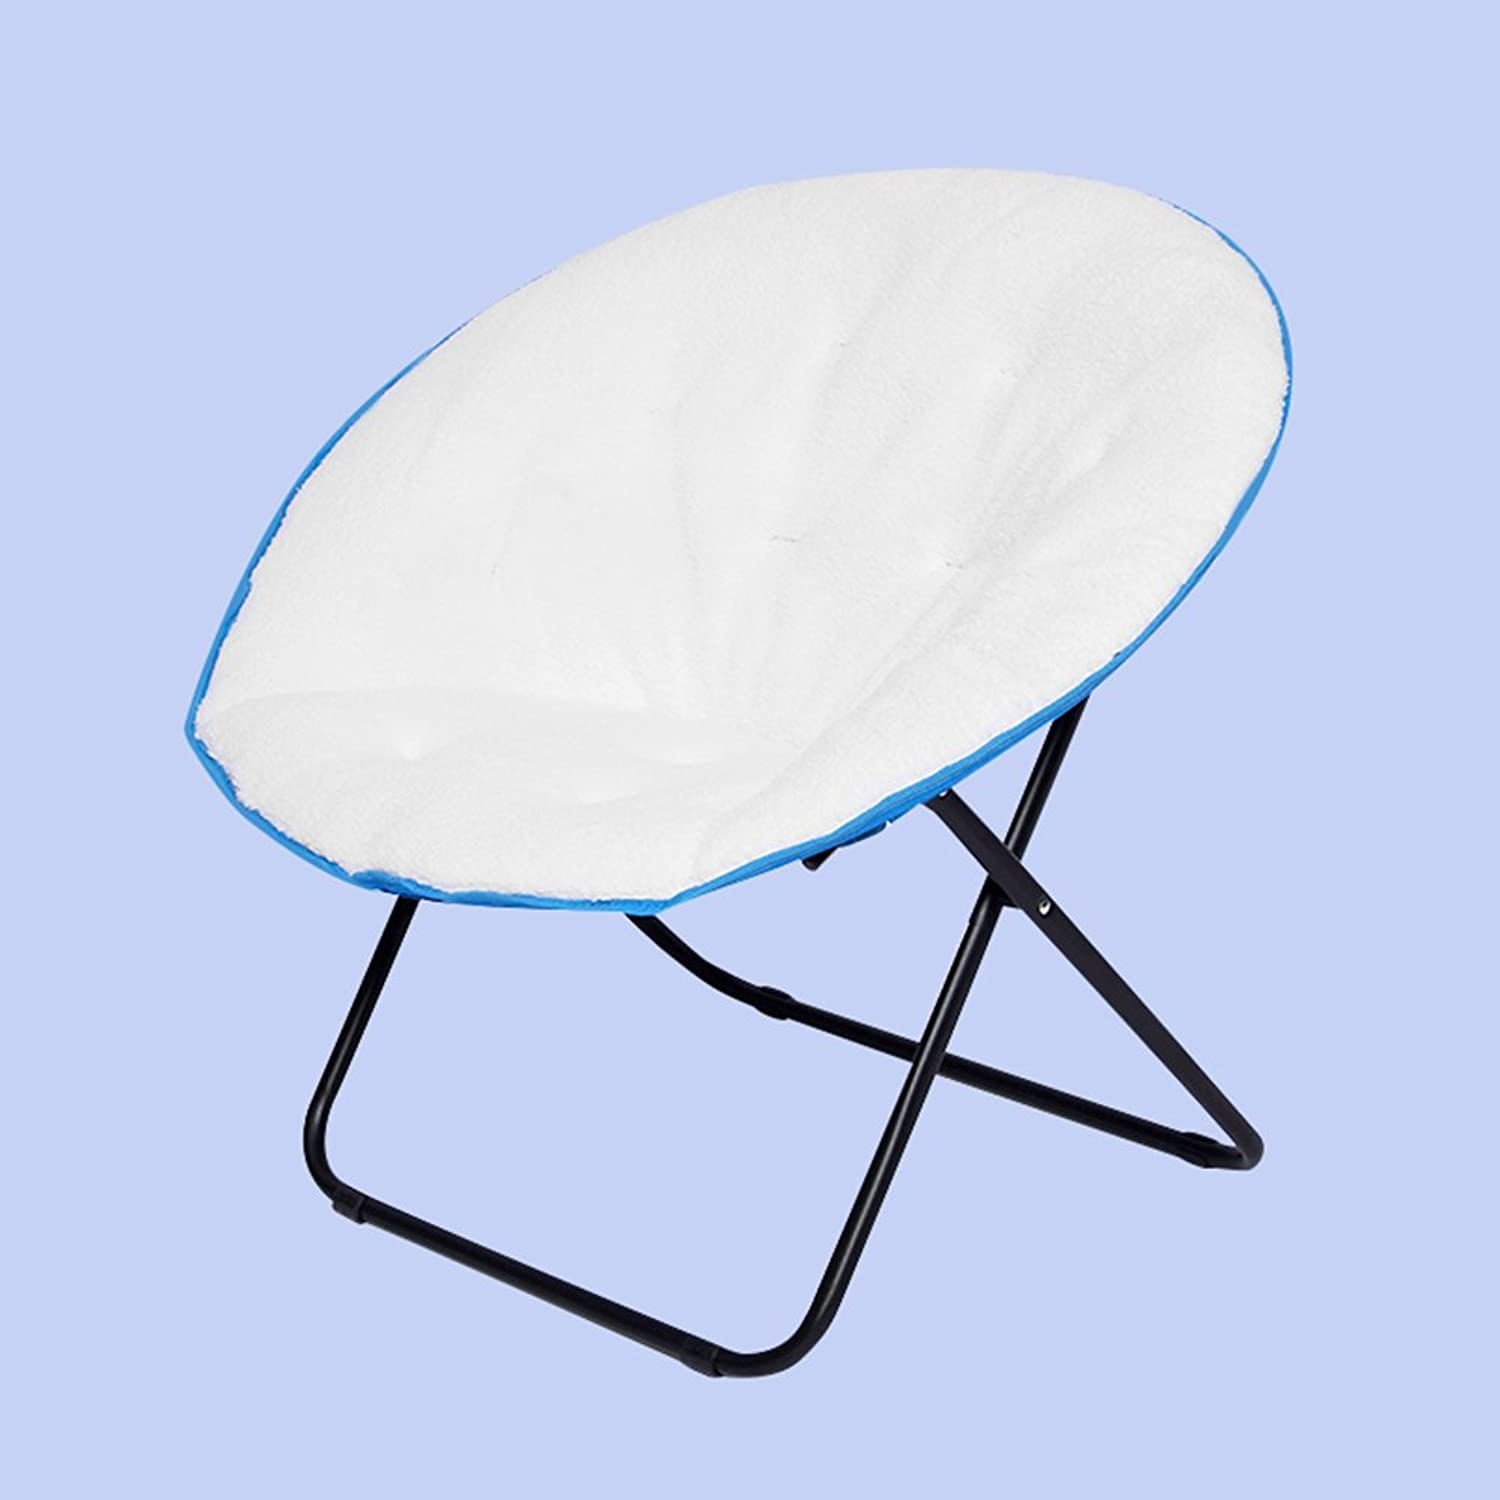 Suede moon chair   folding chair   sun chair   lazy couch   leisure chair   chair 67  76  71cm ( color   bluee )